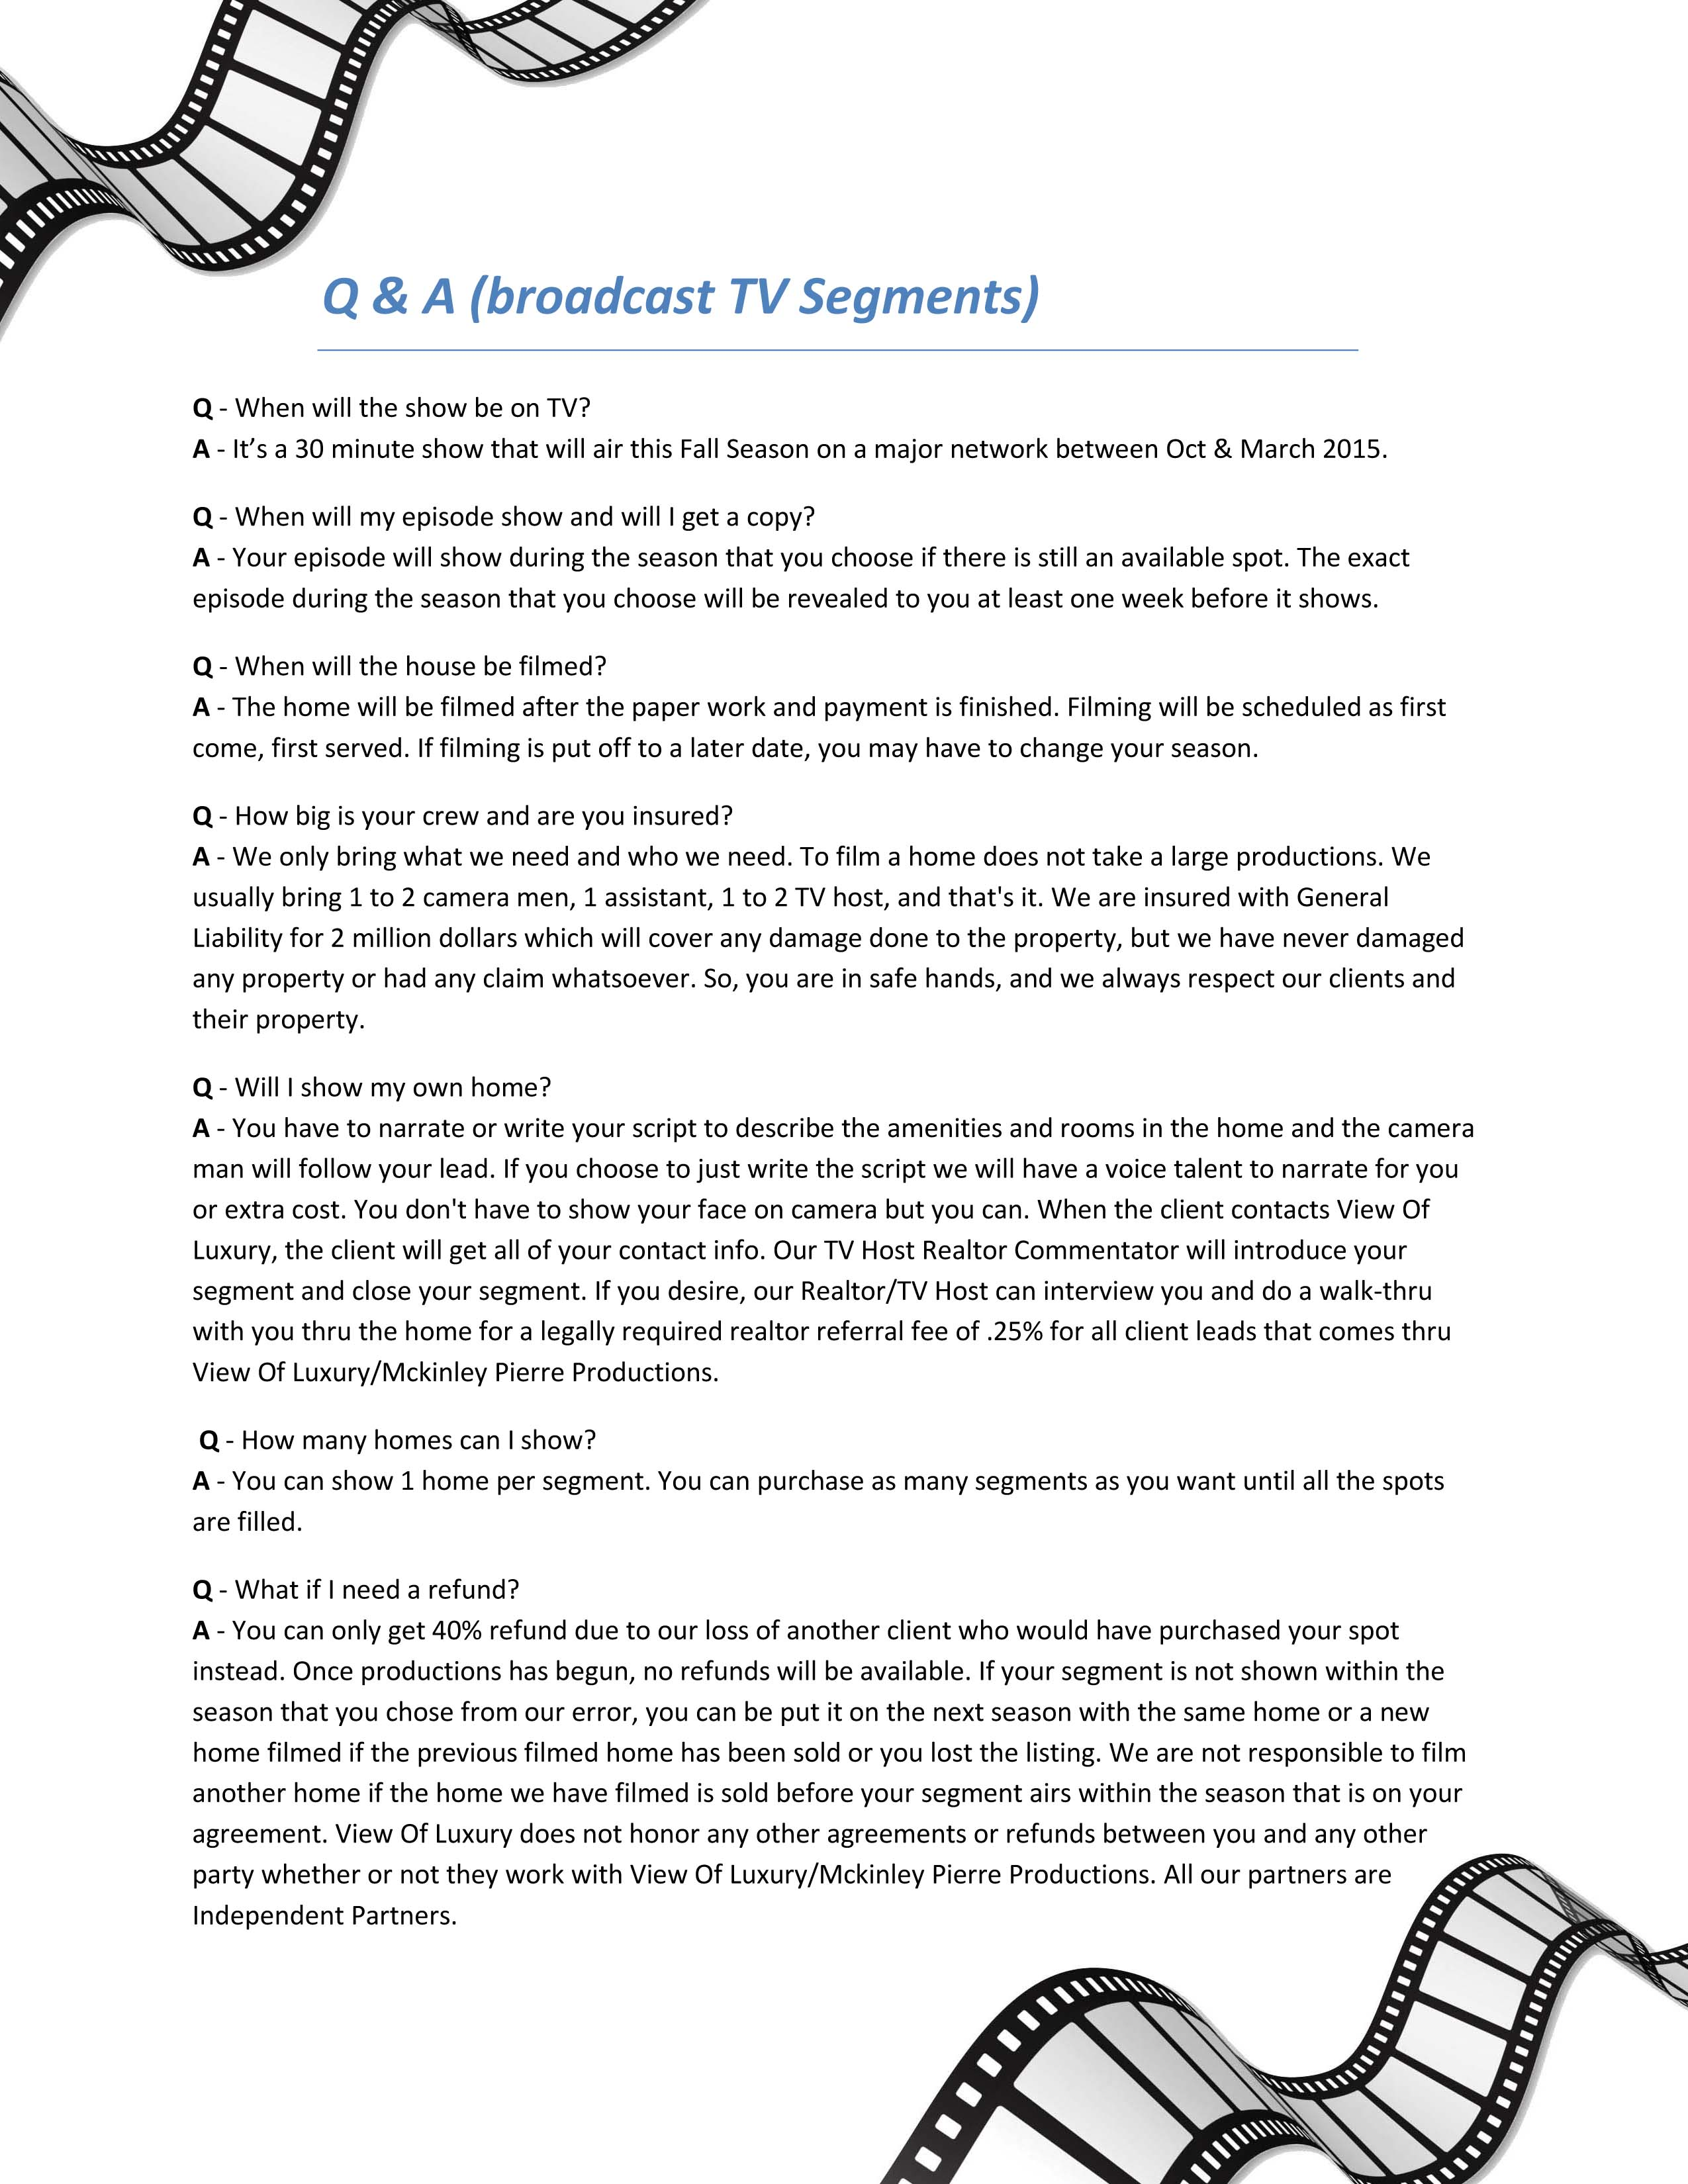 Page-5-Q-and-A